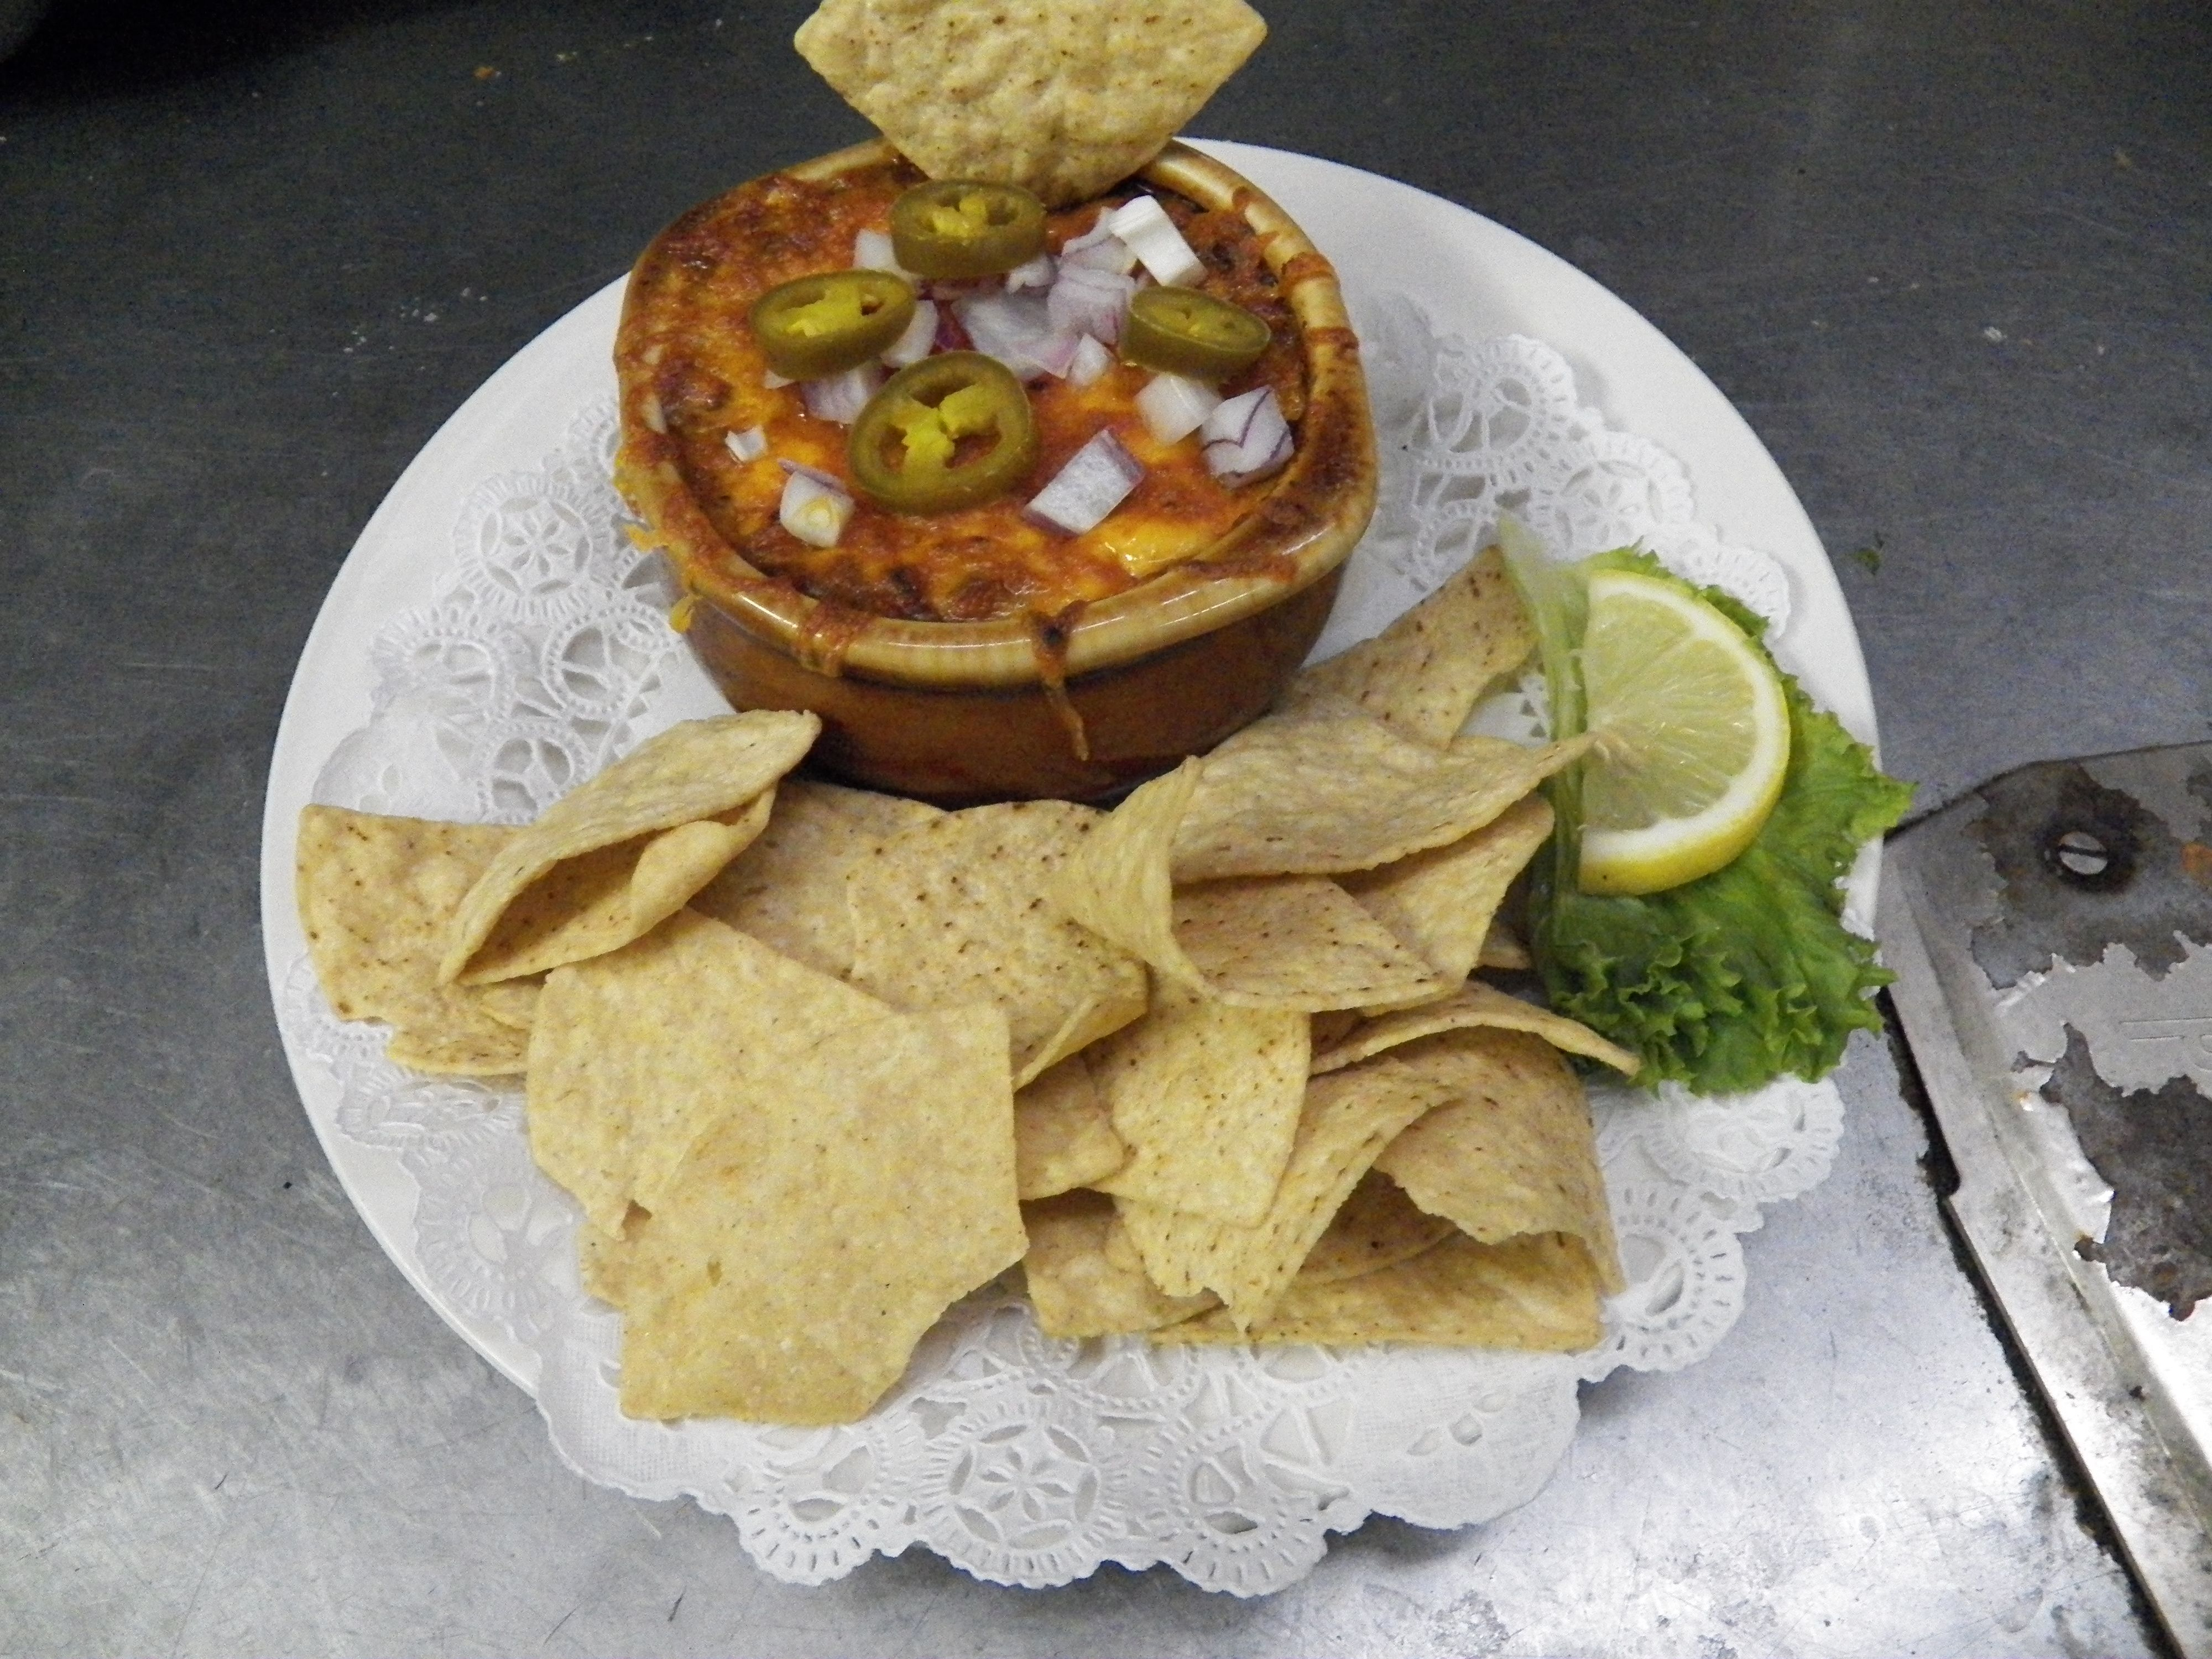 A bowl of our savory chili is perfect for a cool evening at the dockside bar! Topped with cheddar cheese, it is sprinkled with purple onion and chopped jalapenos! Perfectly served with a helping of tortilla chips!